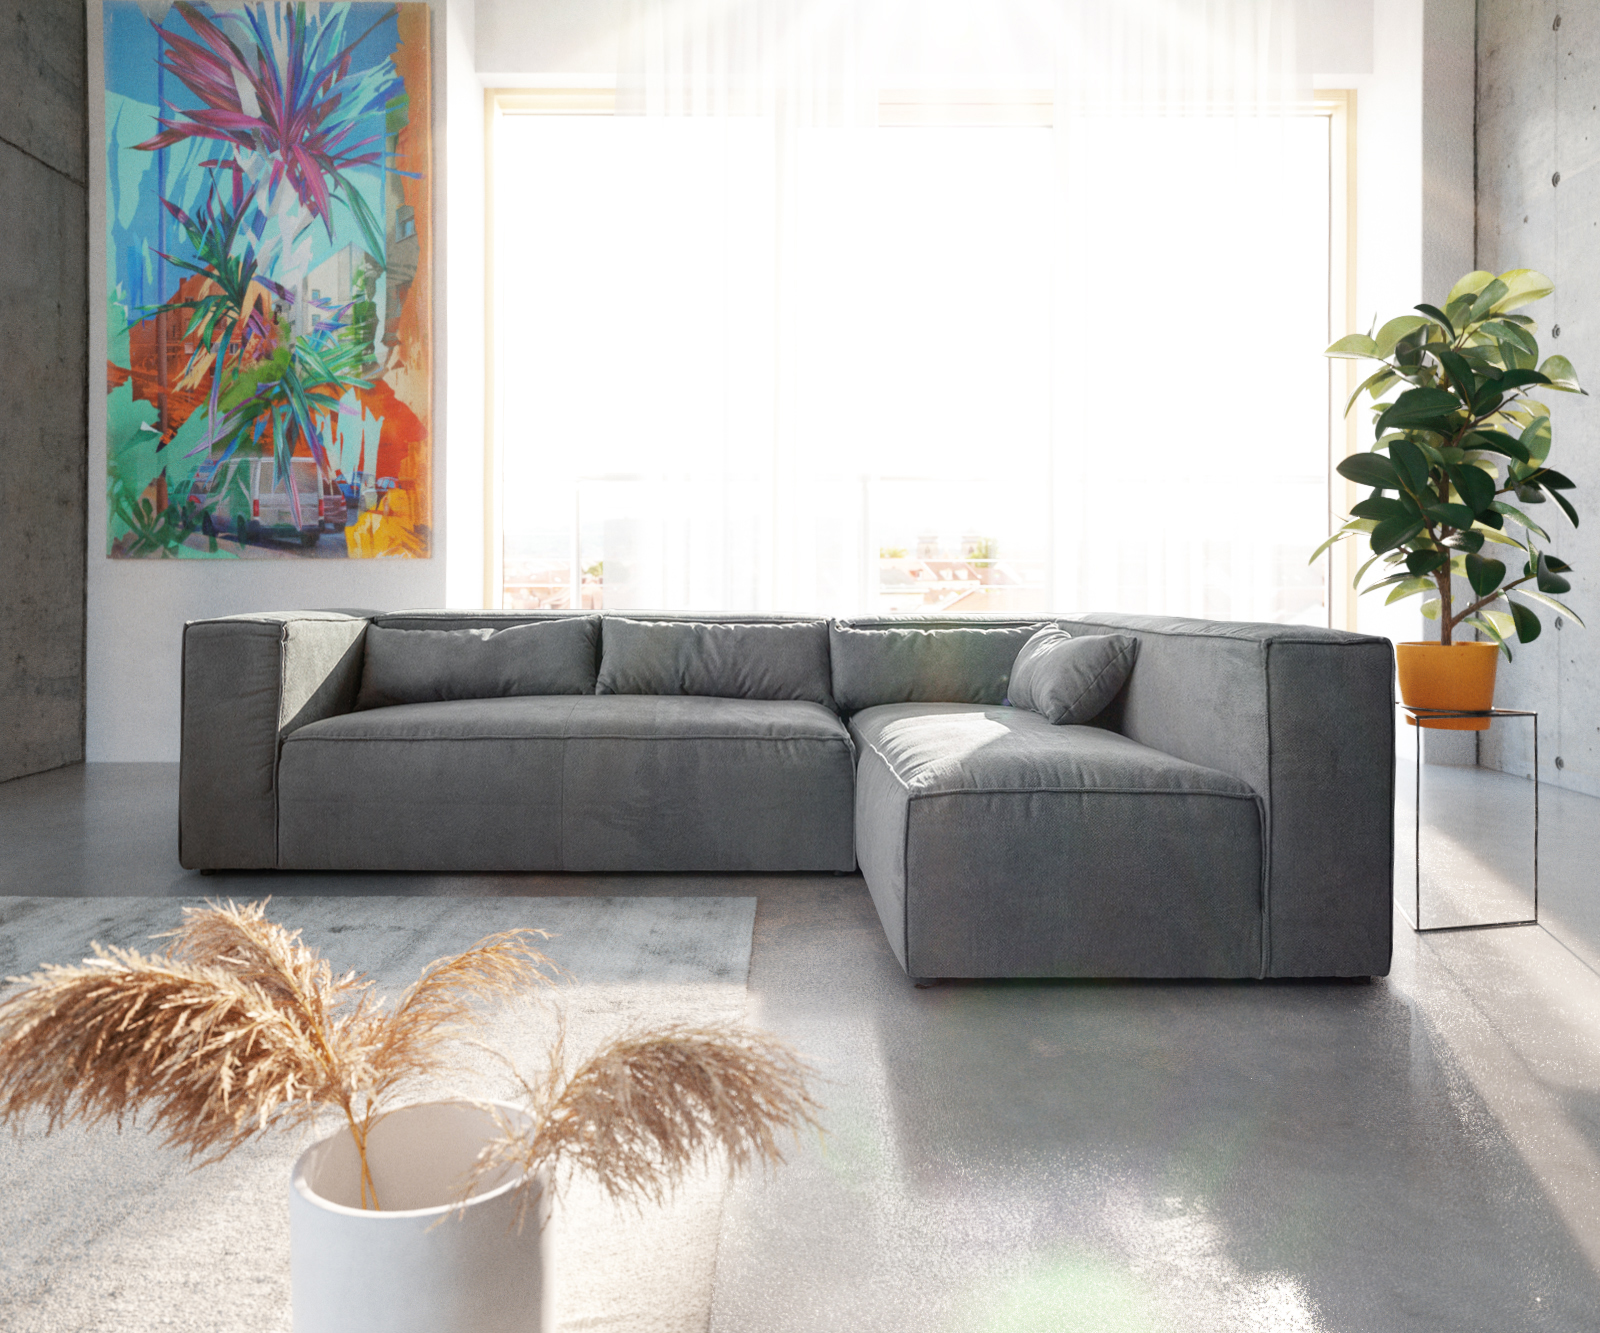 Couch Brom Taupe 267x173 Cm Ottomane Variabel Ecksofa Kaufen Bei Delife Gmbh